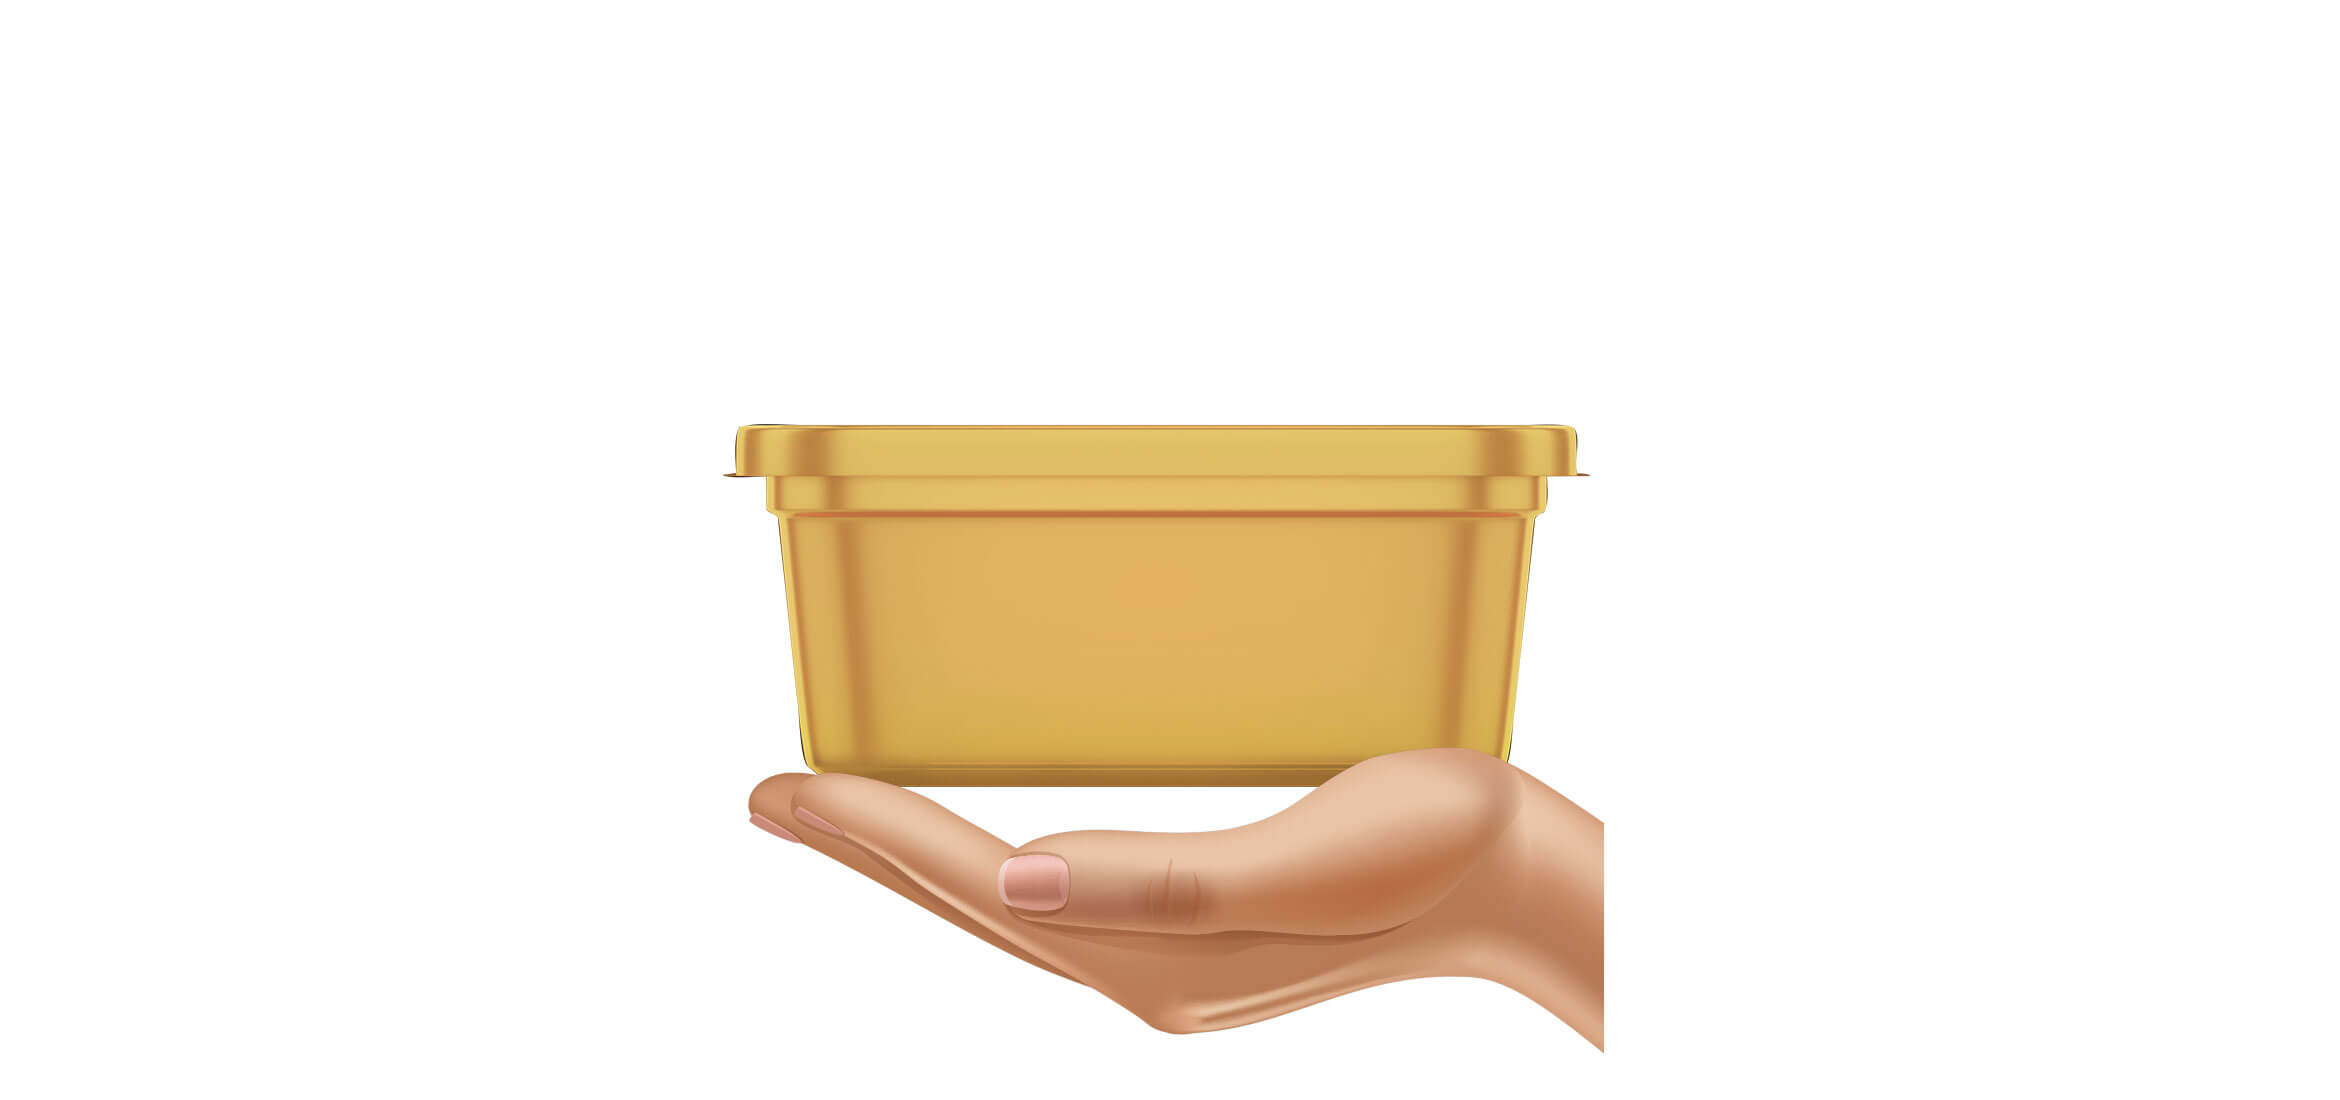 Nutcracker-Container-Square-Medium-Gold-Hand-2X